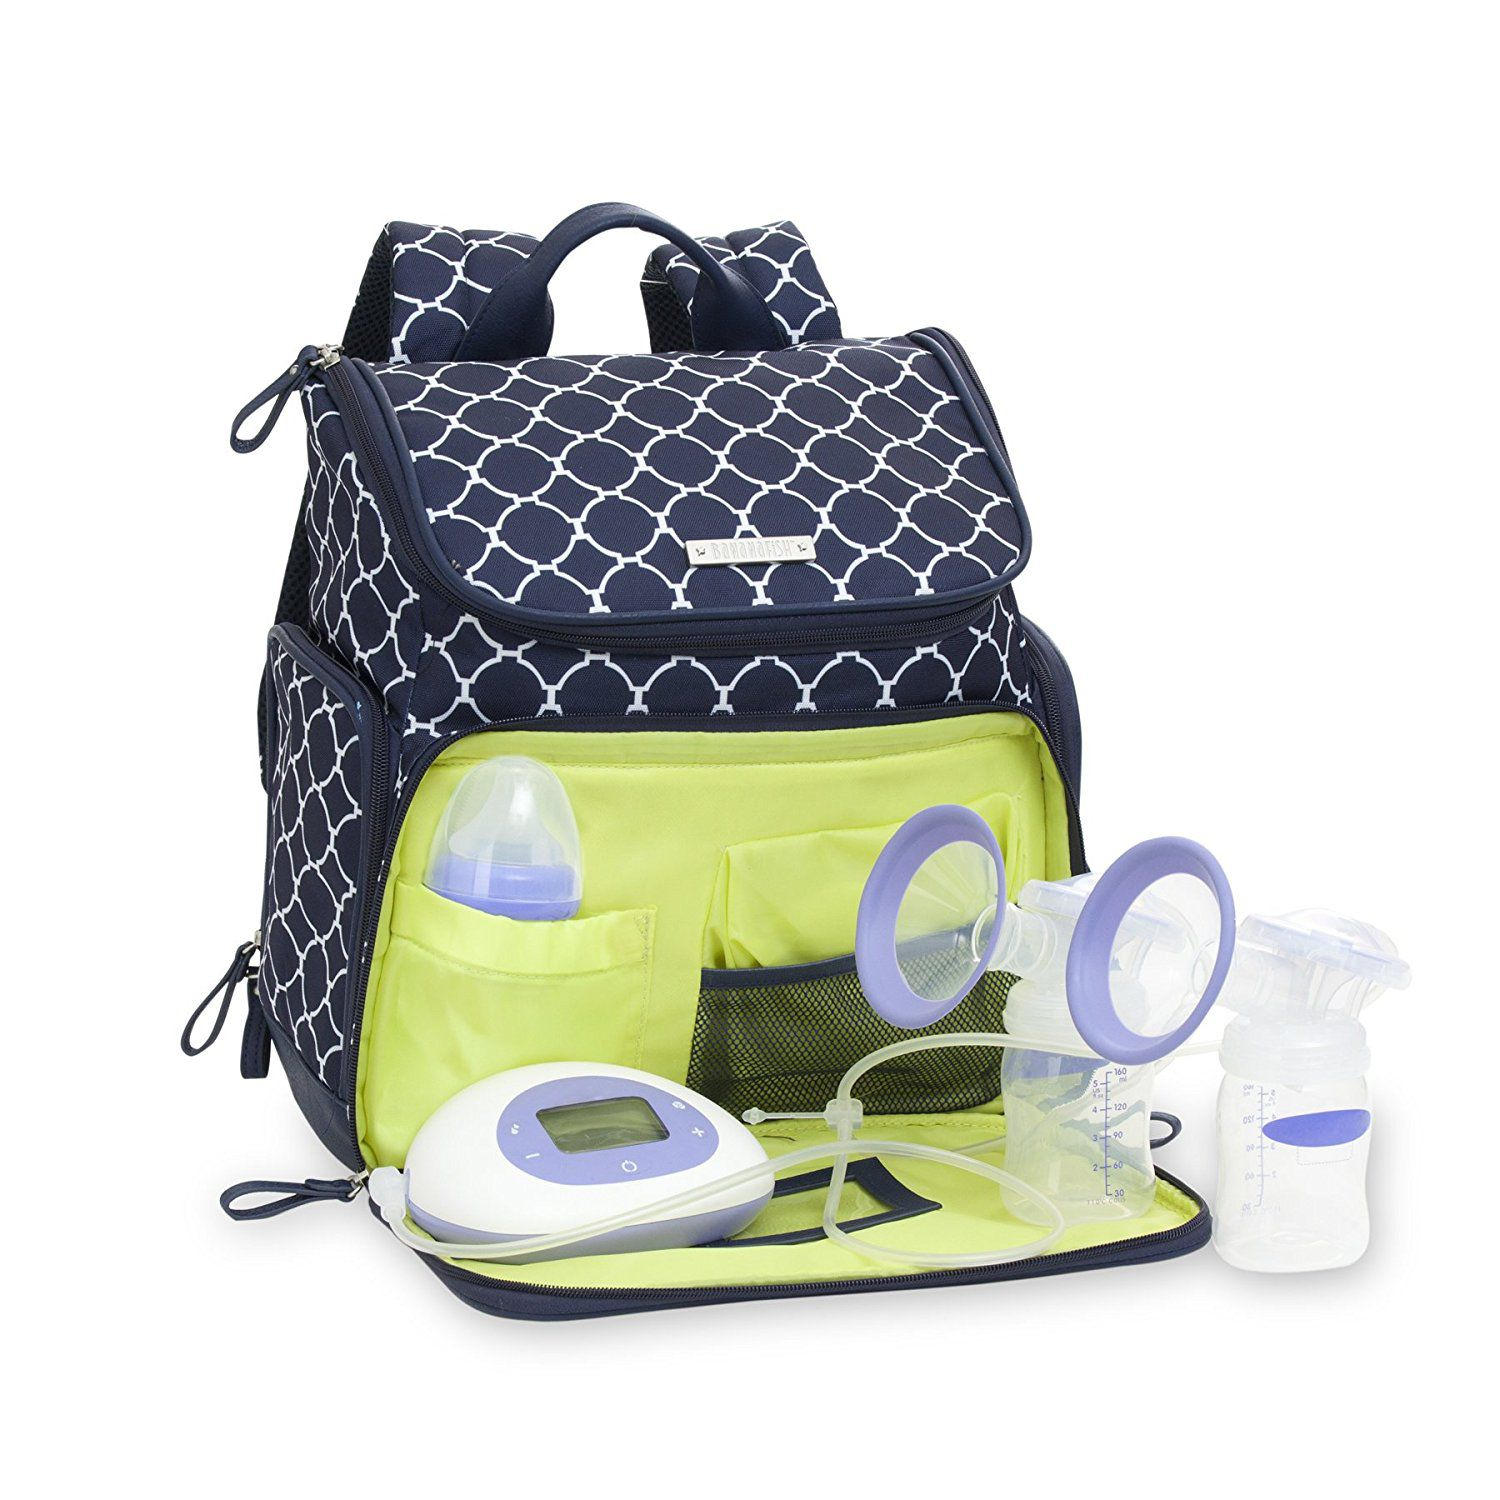 10 gorgeous well made breast pump bags